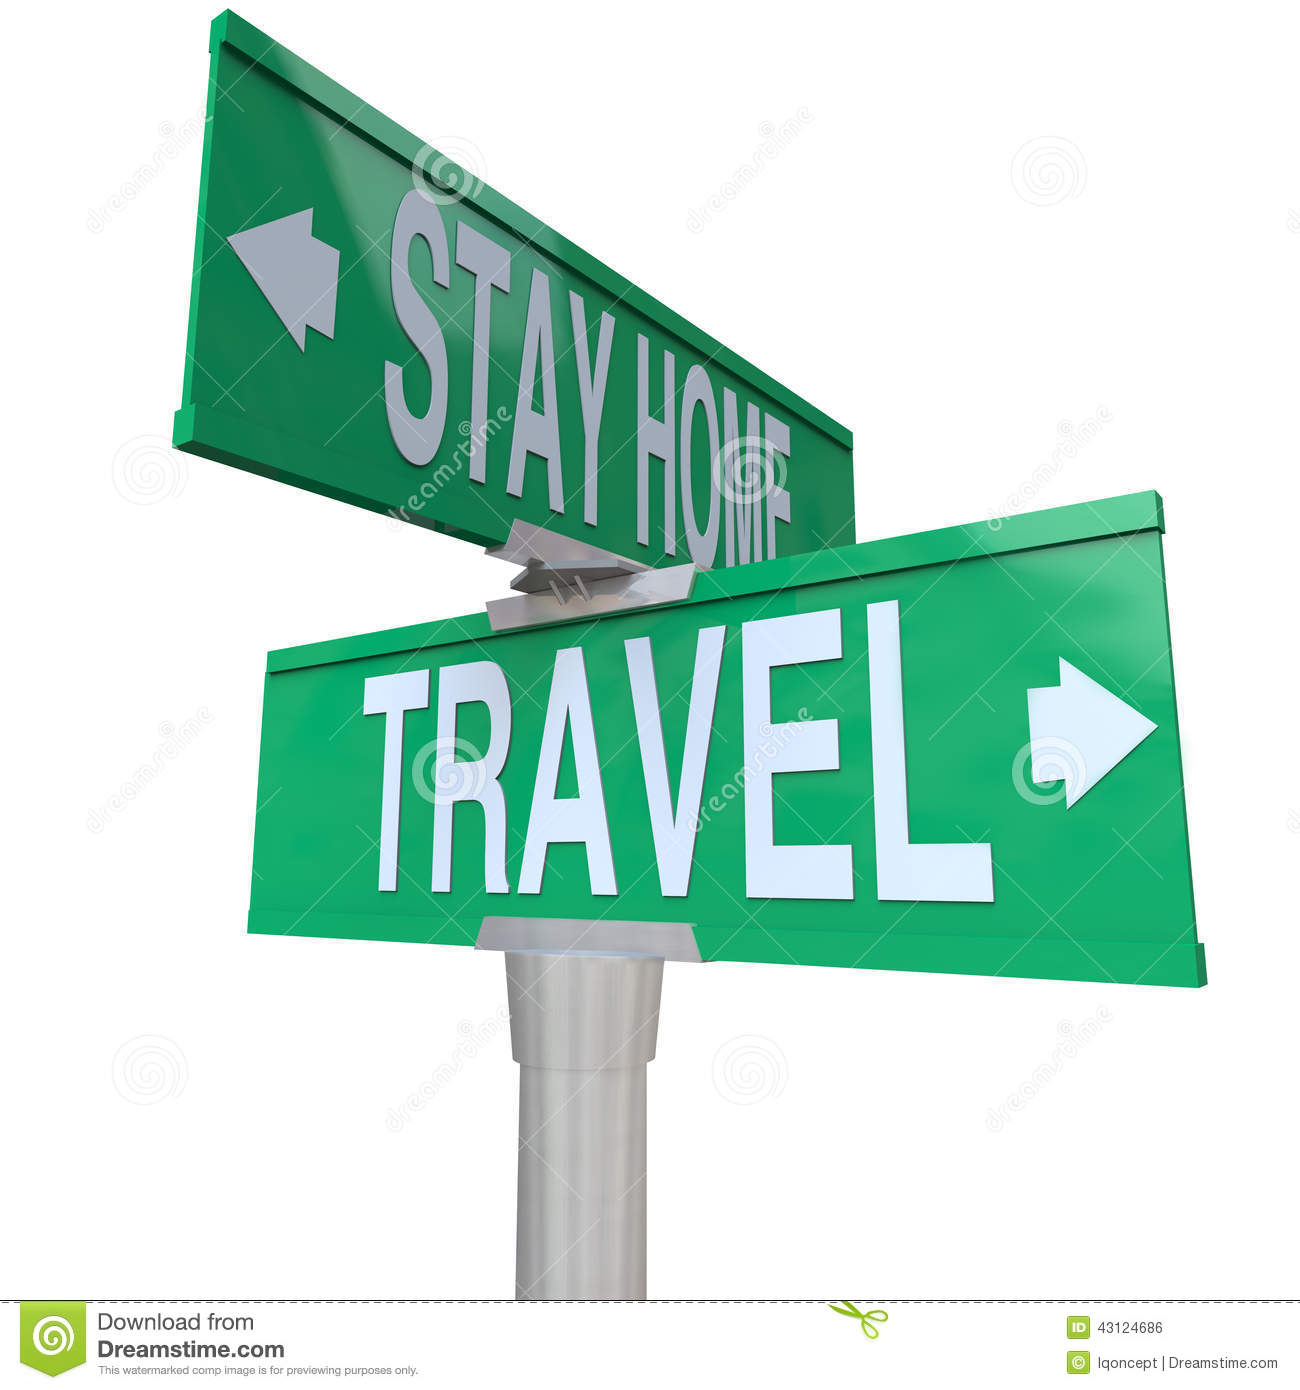 travelling vacations vs. staycations essay Free essay: travelling vacations vs staycations rating: 50 staycations have in the past few years become the most popular alternative to vacation.